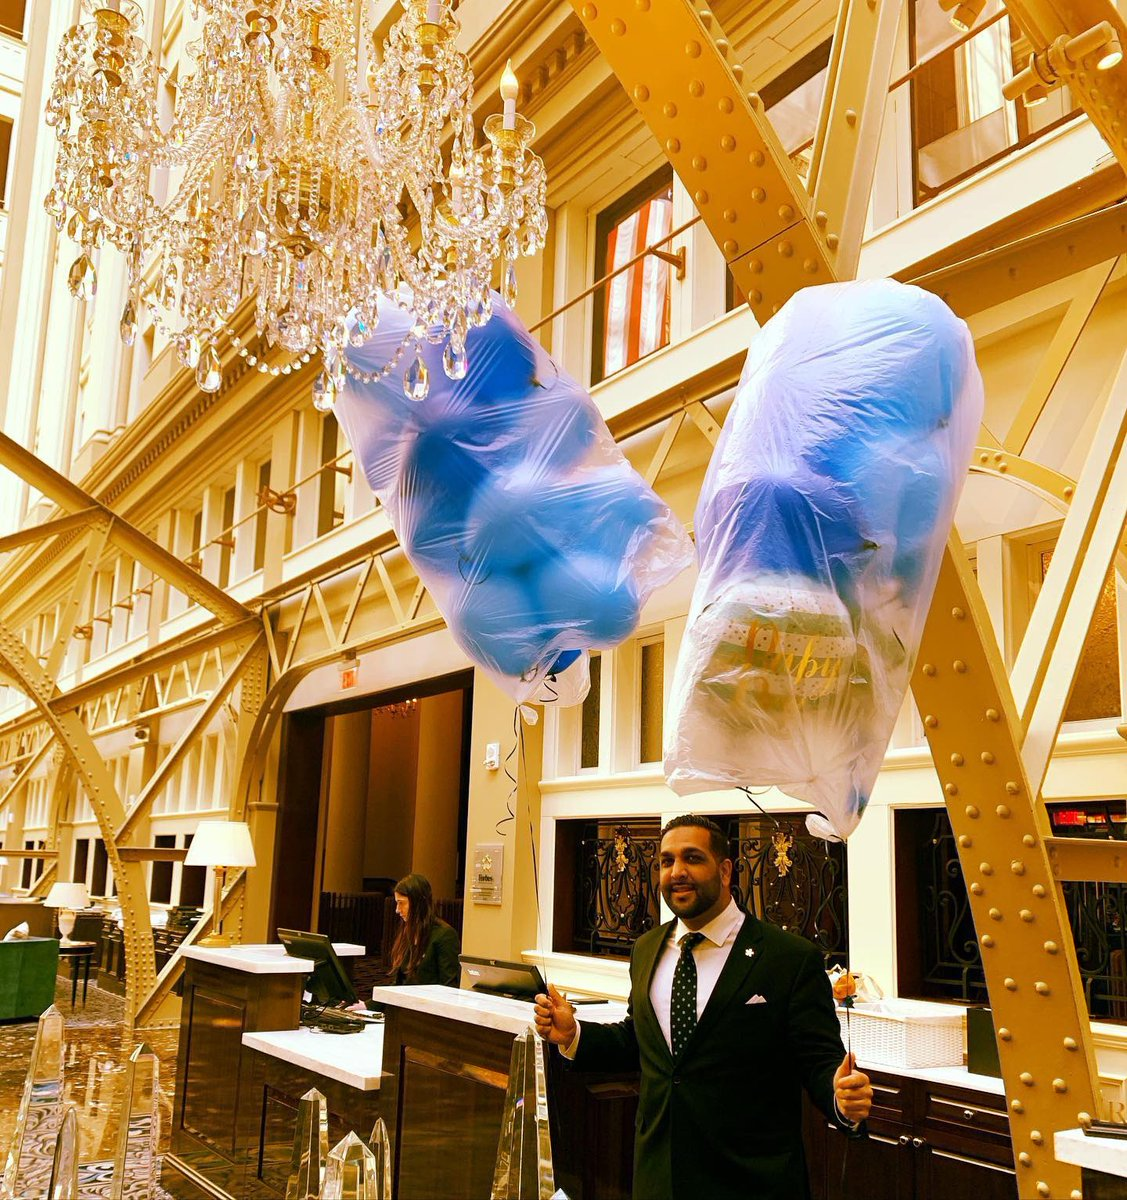 You have 30mns to find 20 balloons for a guest...Challenge accepted and mission accomplished by @ali_922 and our amazing @trumpwashingtondc Attache Team...#service #hotellife #success #neversettle #onlyfivestarhoteldowntowndc #doitbetterthananyoneelse #WashingtonDC #trump